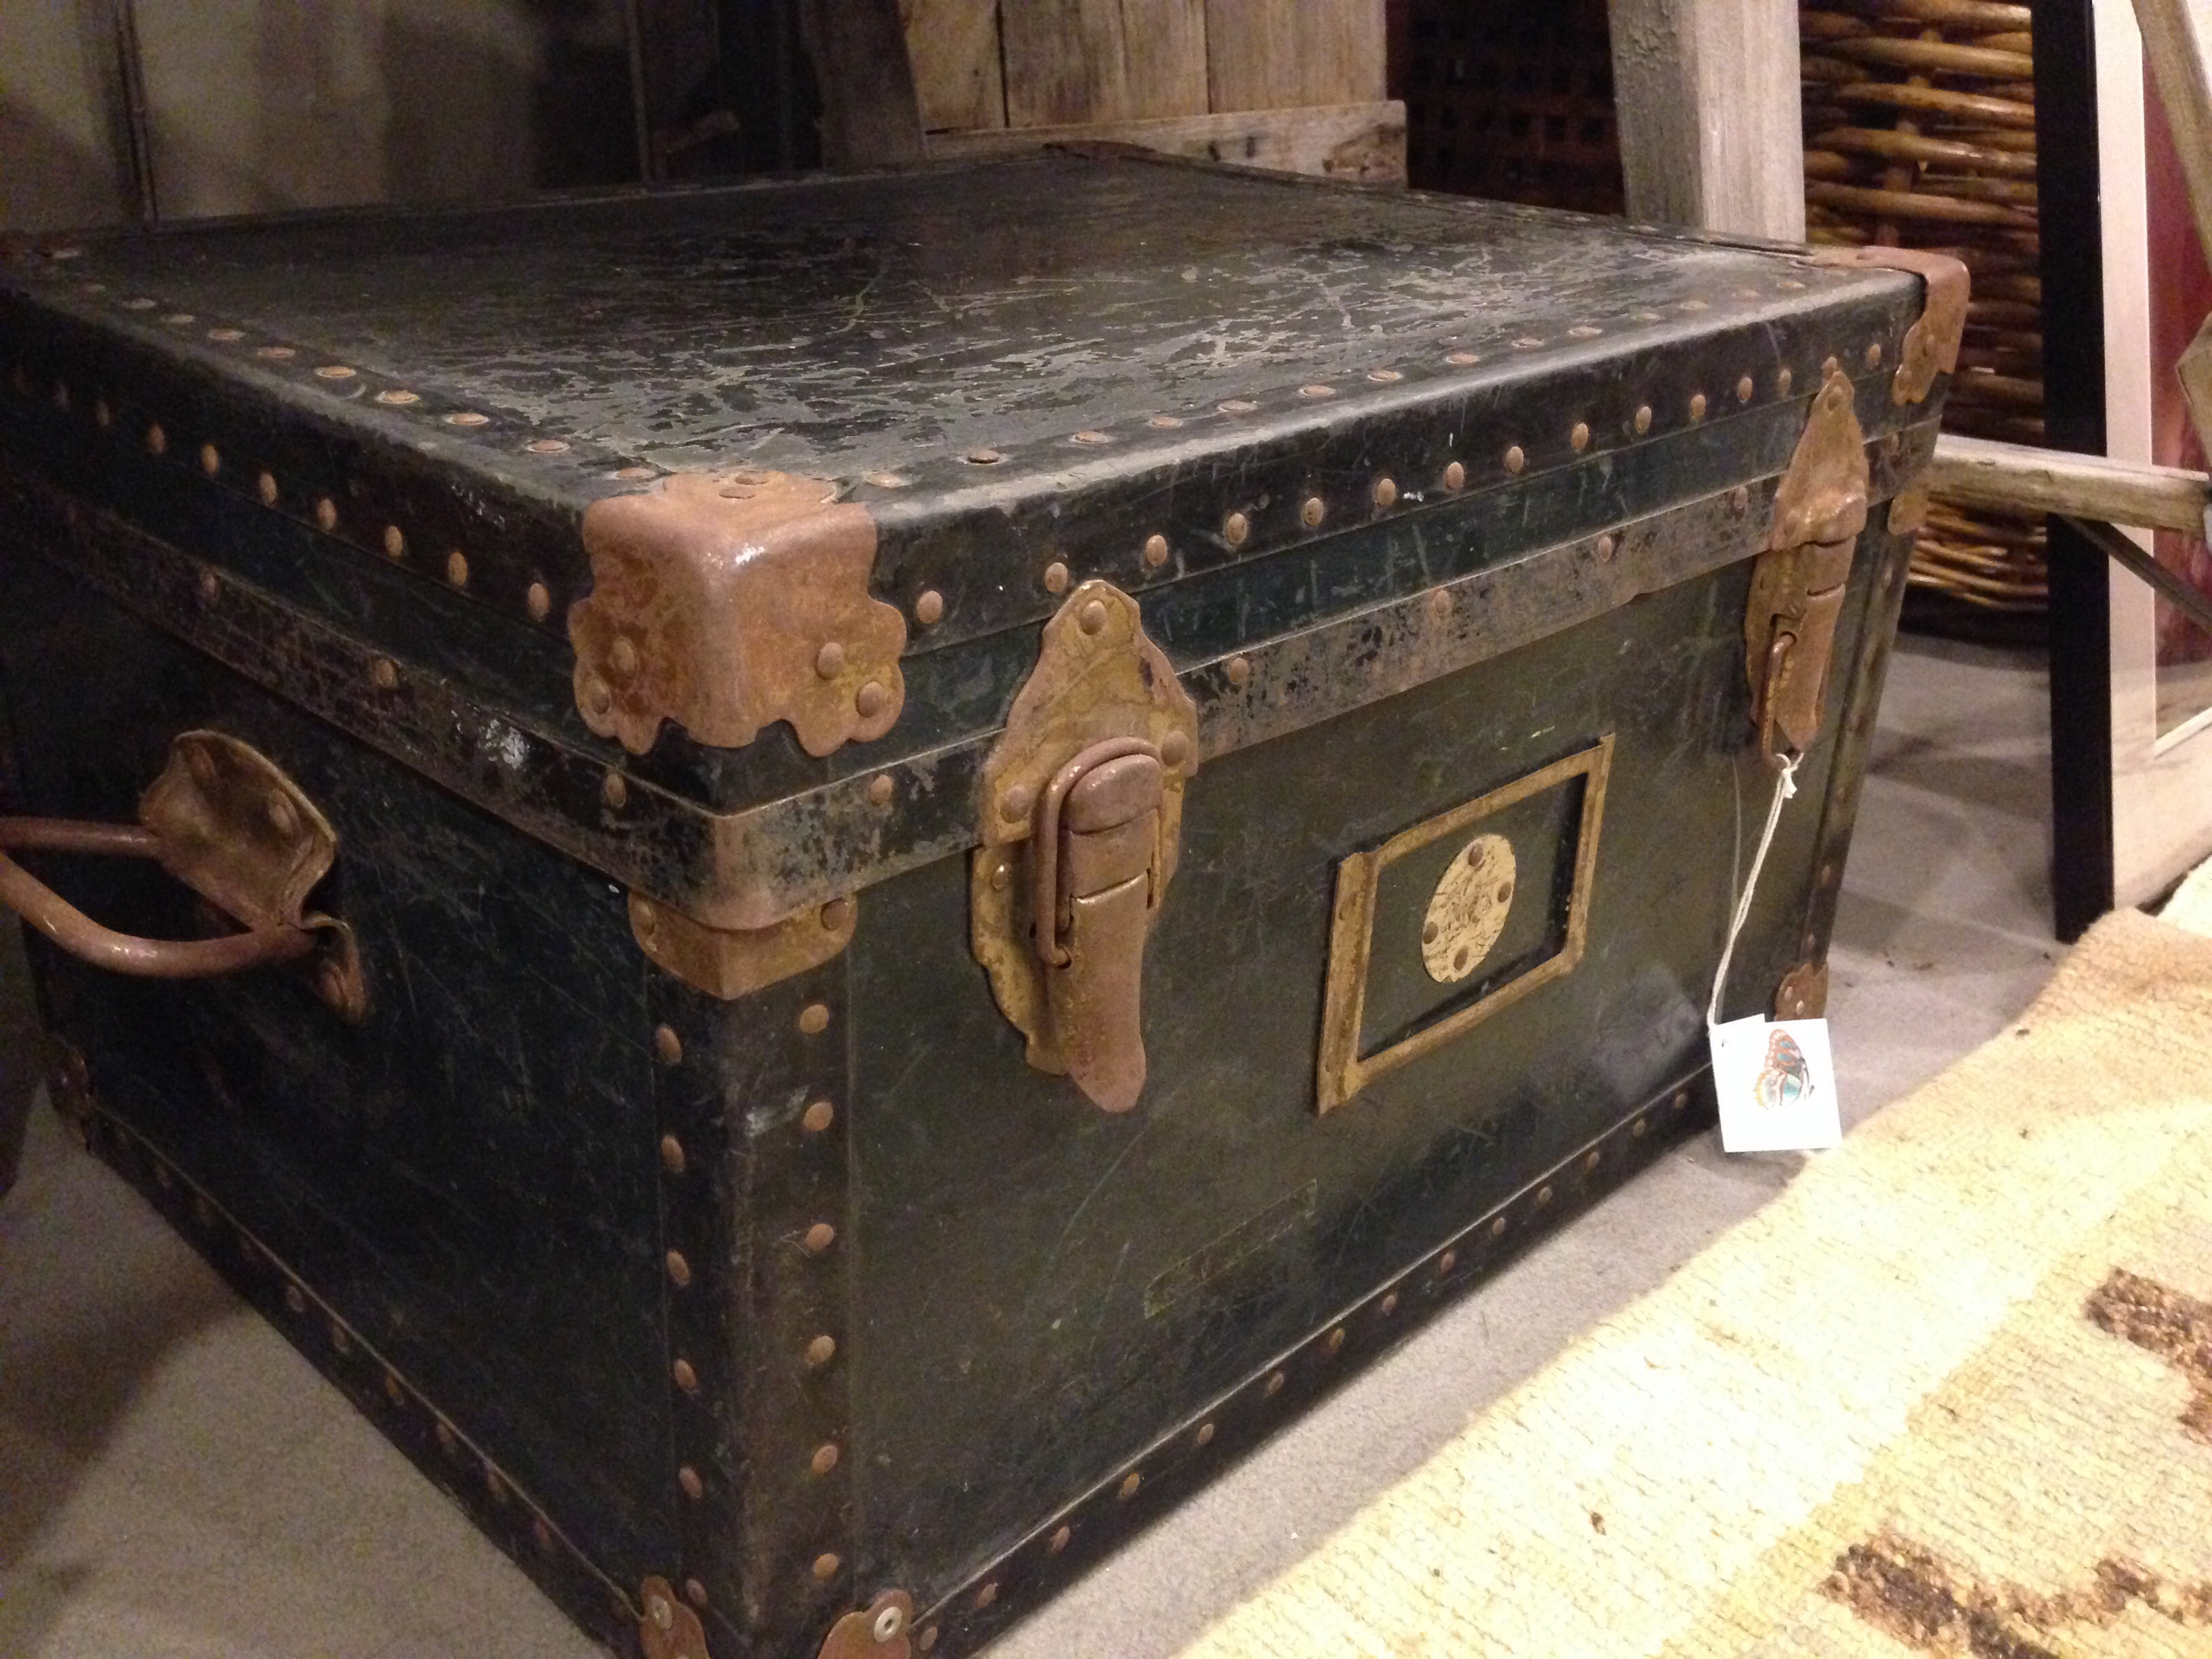 The Trunk of Treasures